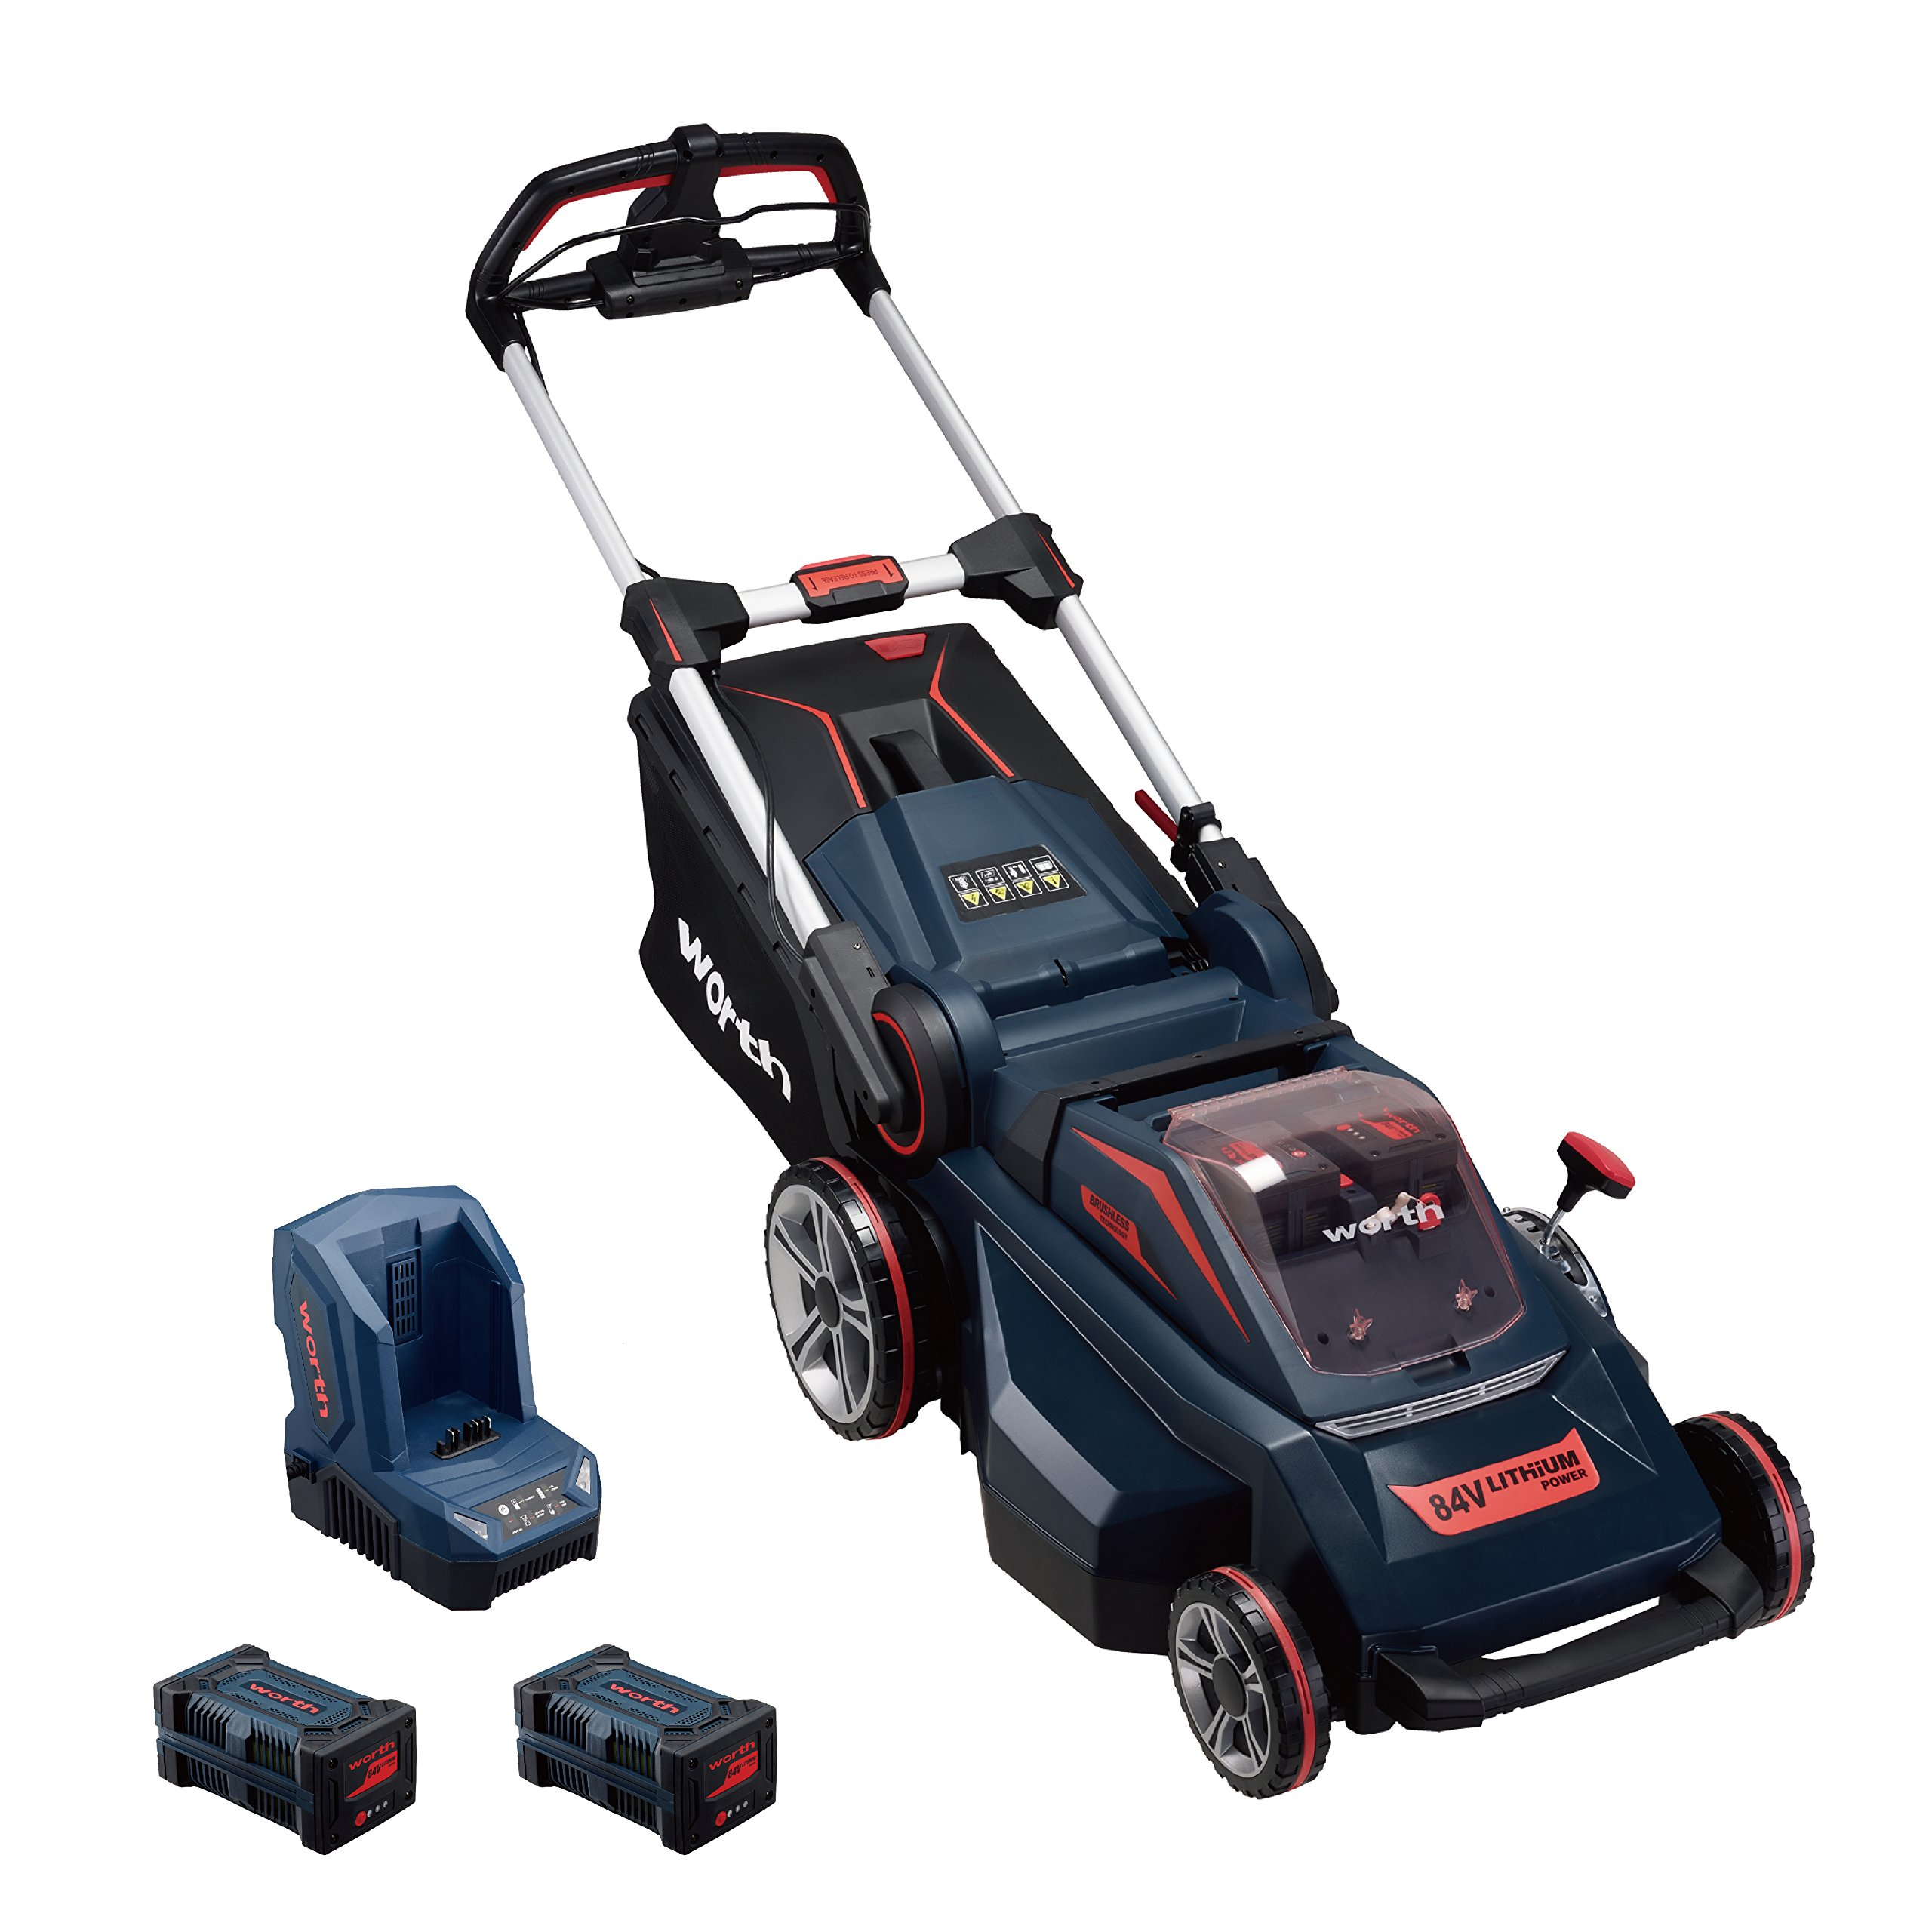 Worth Garden PowerMax 84V Lithium Battery Lawn Mower - Self Propelled Heavy Duty Lawn Mower - Brushless Motor Cordless Lawn Mower - Smart Cut(TM) Technology for Uneven Terrain - 3 Year Warranty Foldab